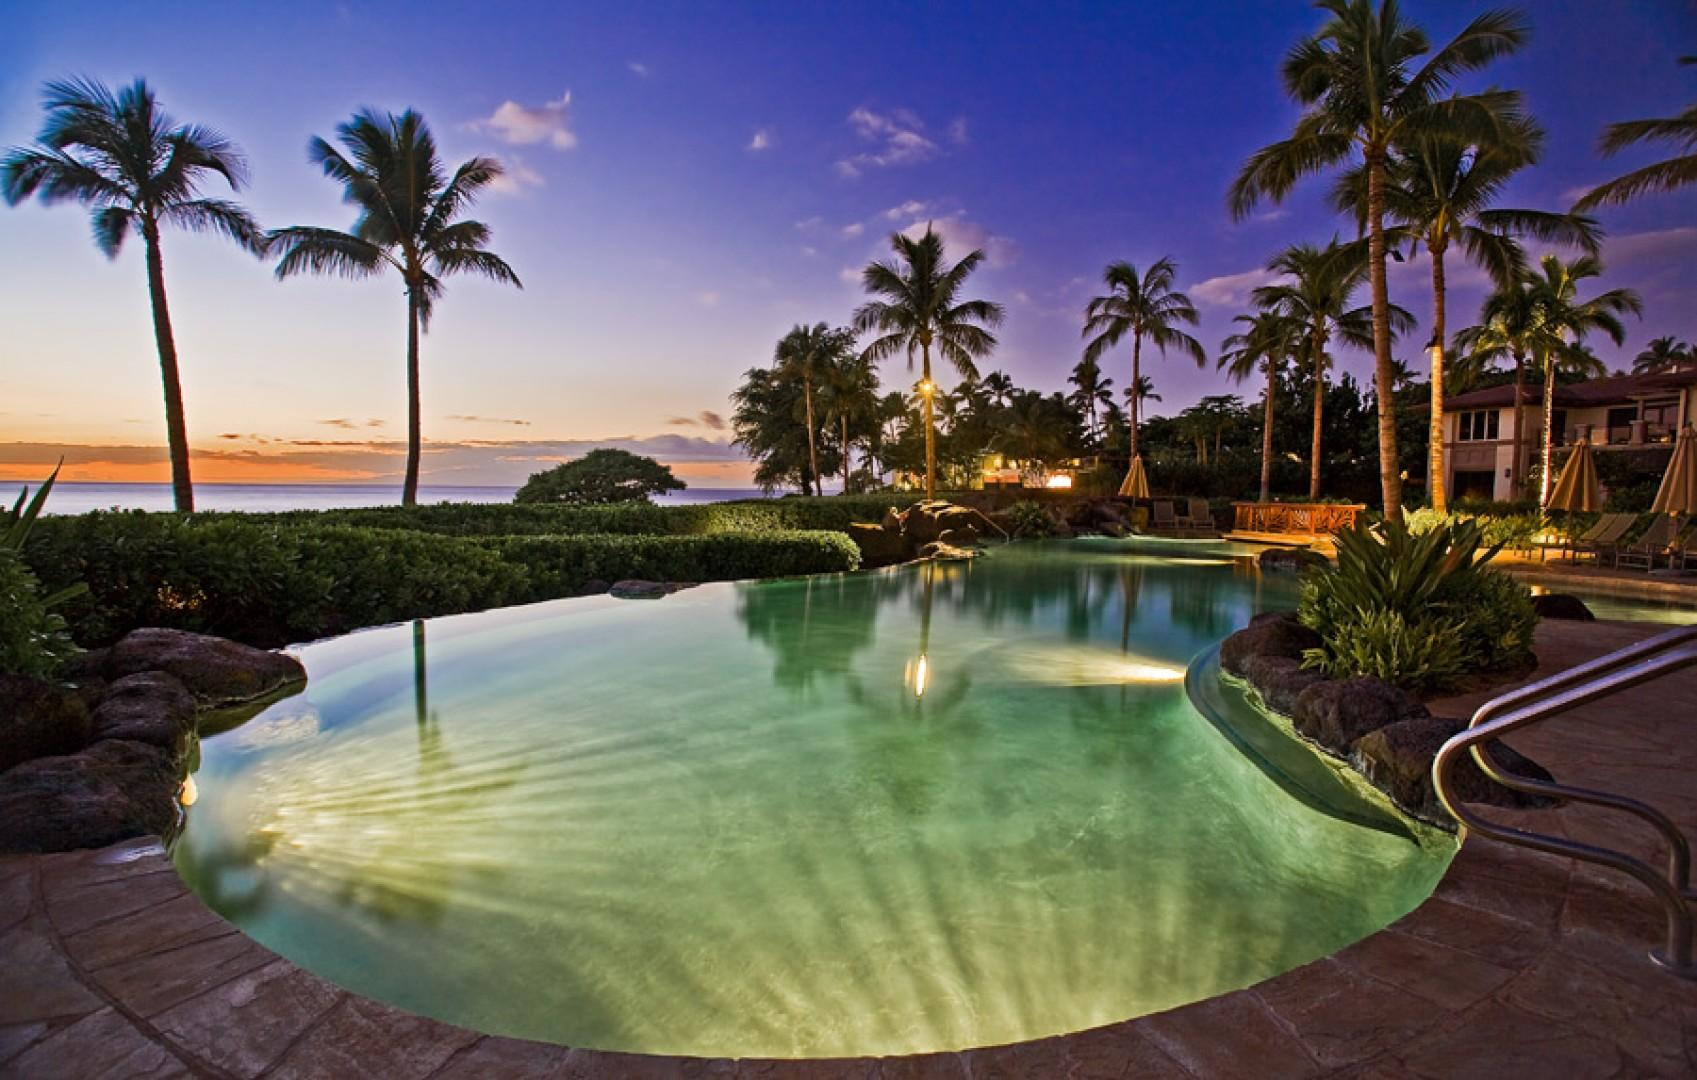 Twilight at the infinity pool.